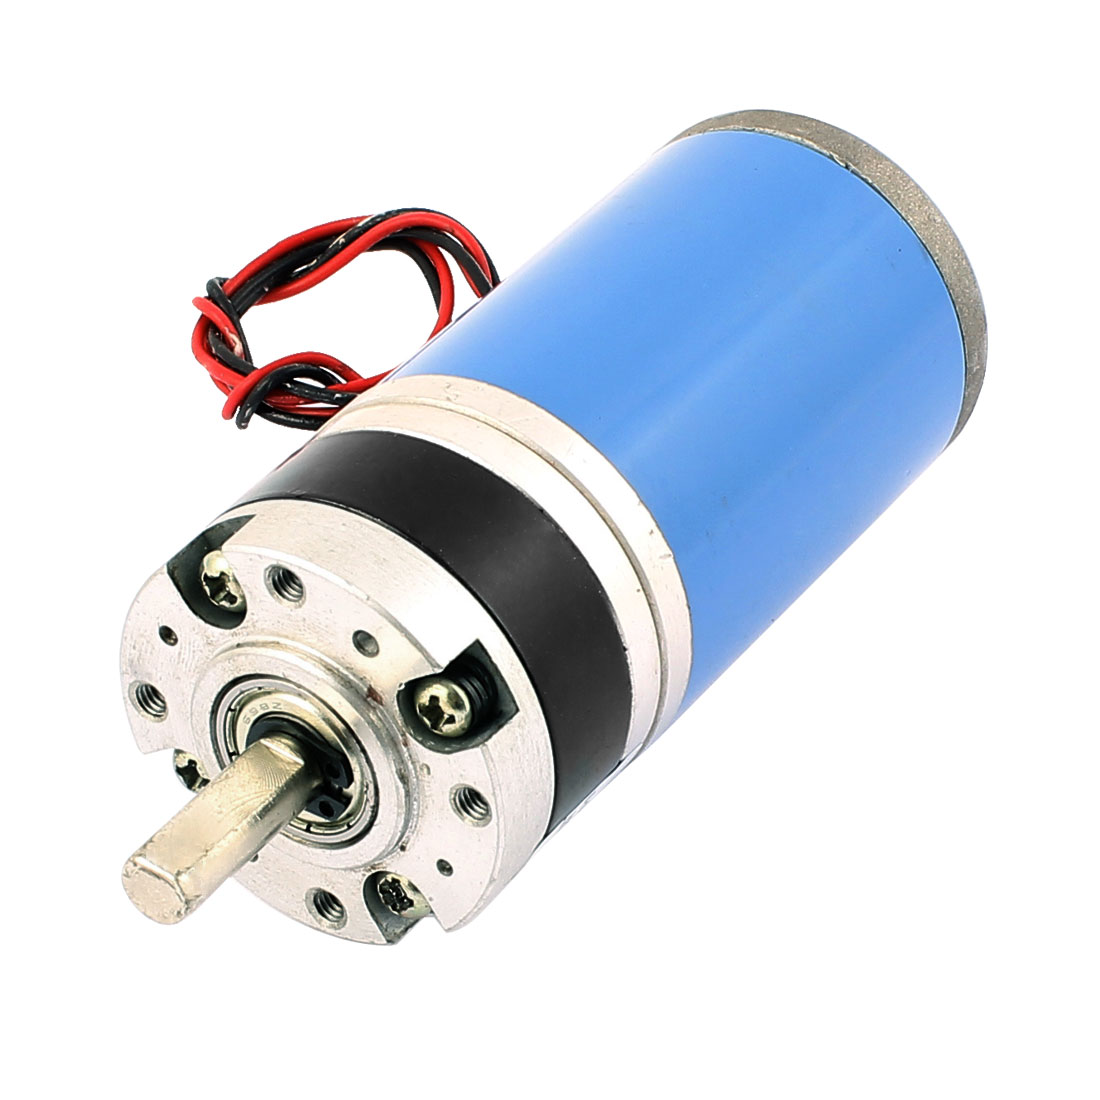 DC 24V 980RPM 8mm Shaft Dia DC Planetary Gearbox Reduction Motor TJX45RN5.2i-ZX8001